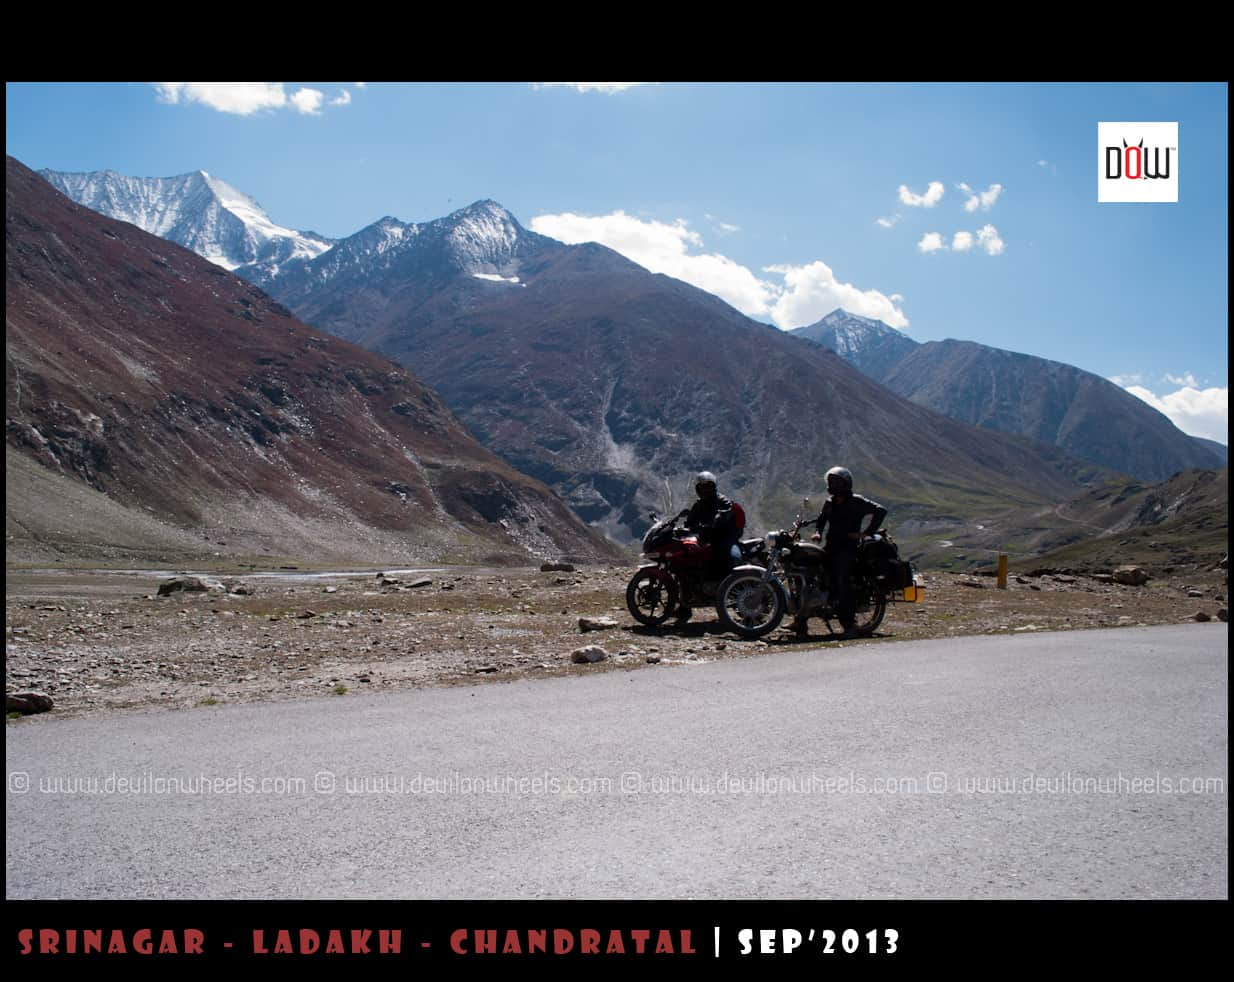 The Two Bikers of our group on Srinagar - Leh Highway